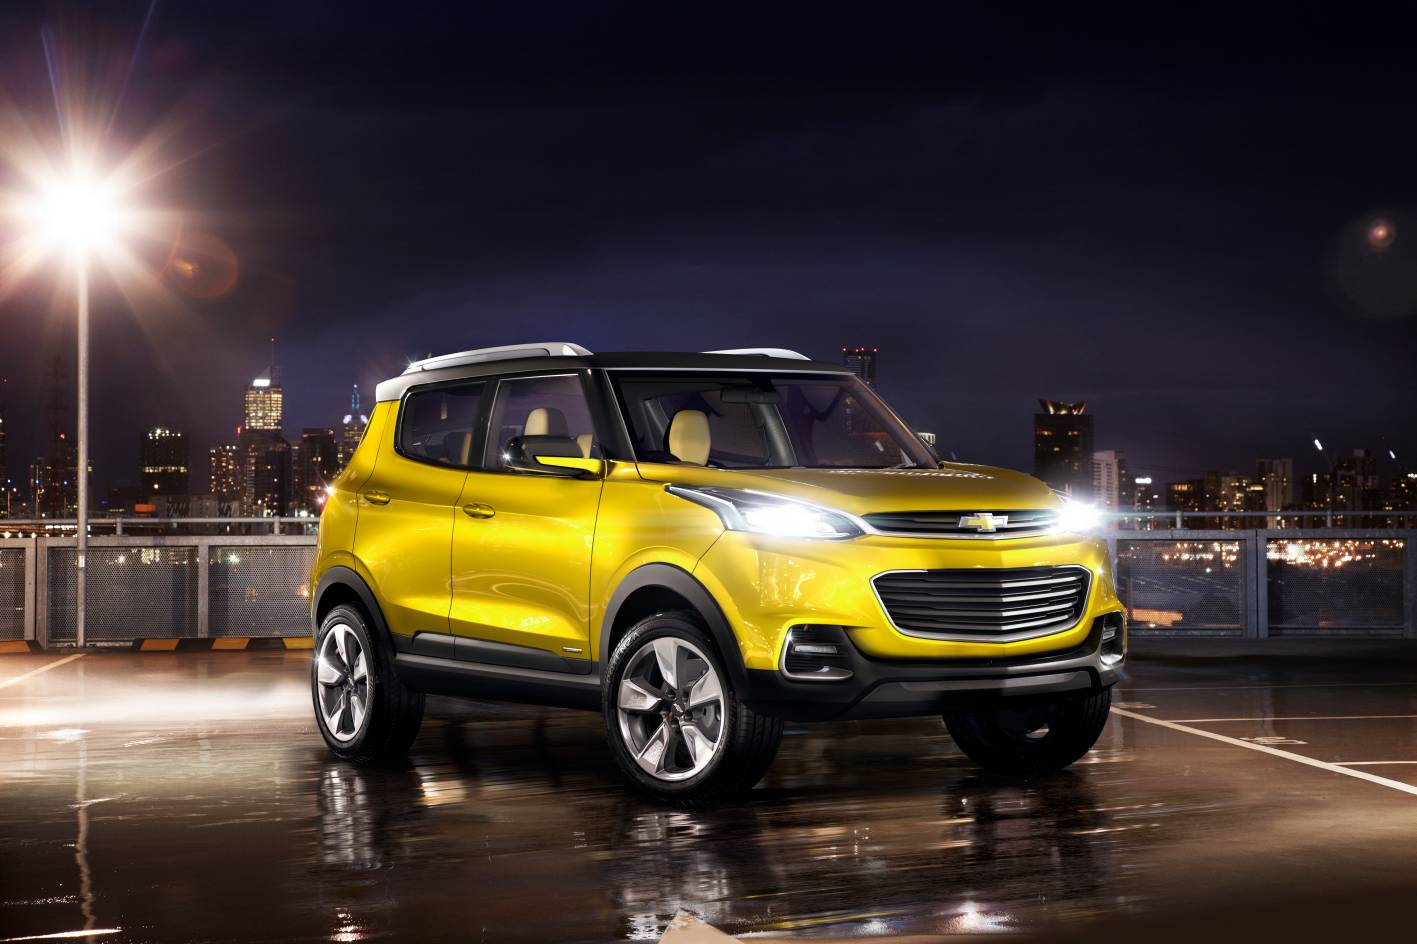 Chevrolet cars news chevrolet adra small suv for india for General motors cars models